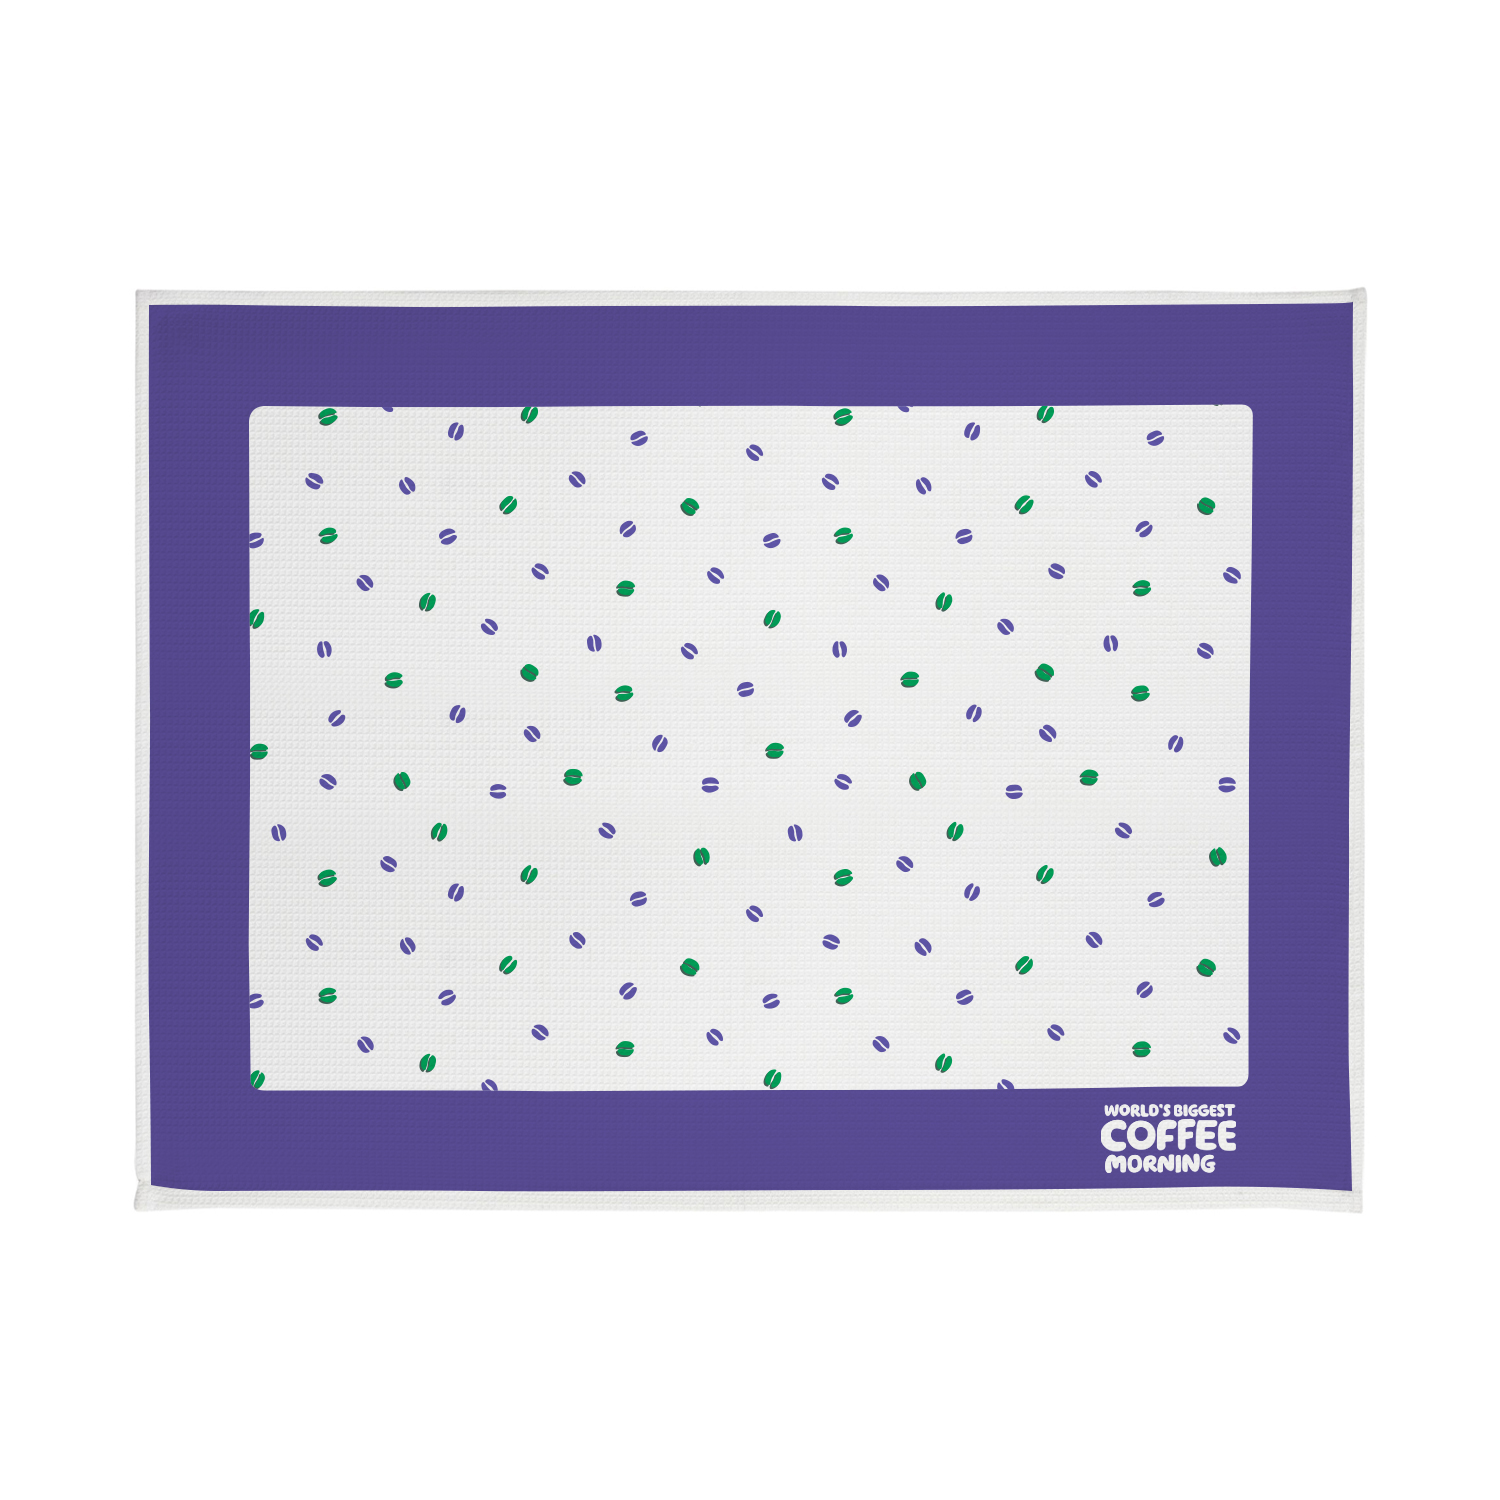 A purple and white tea towel with green and purple coffee beans printed on it